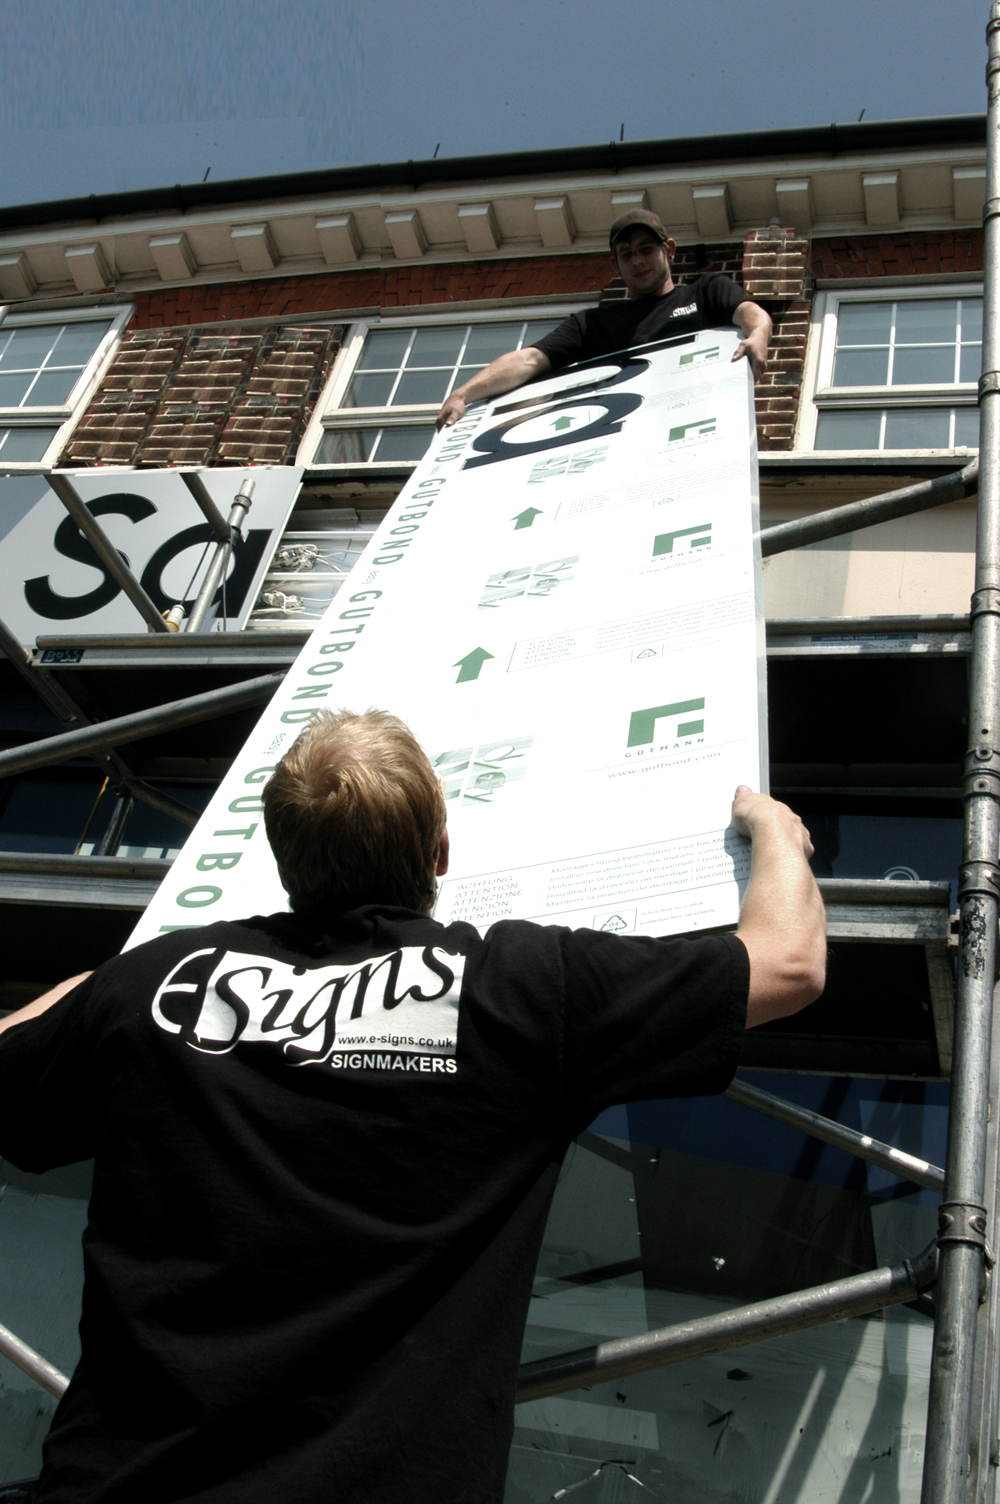 Illuminated Fascia E Signs ® www.e-signs.co.uk sign installers in London